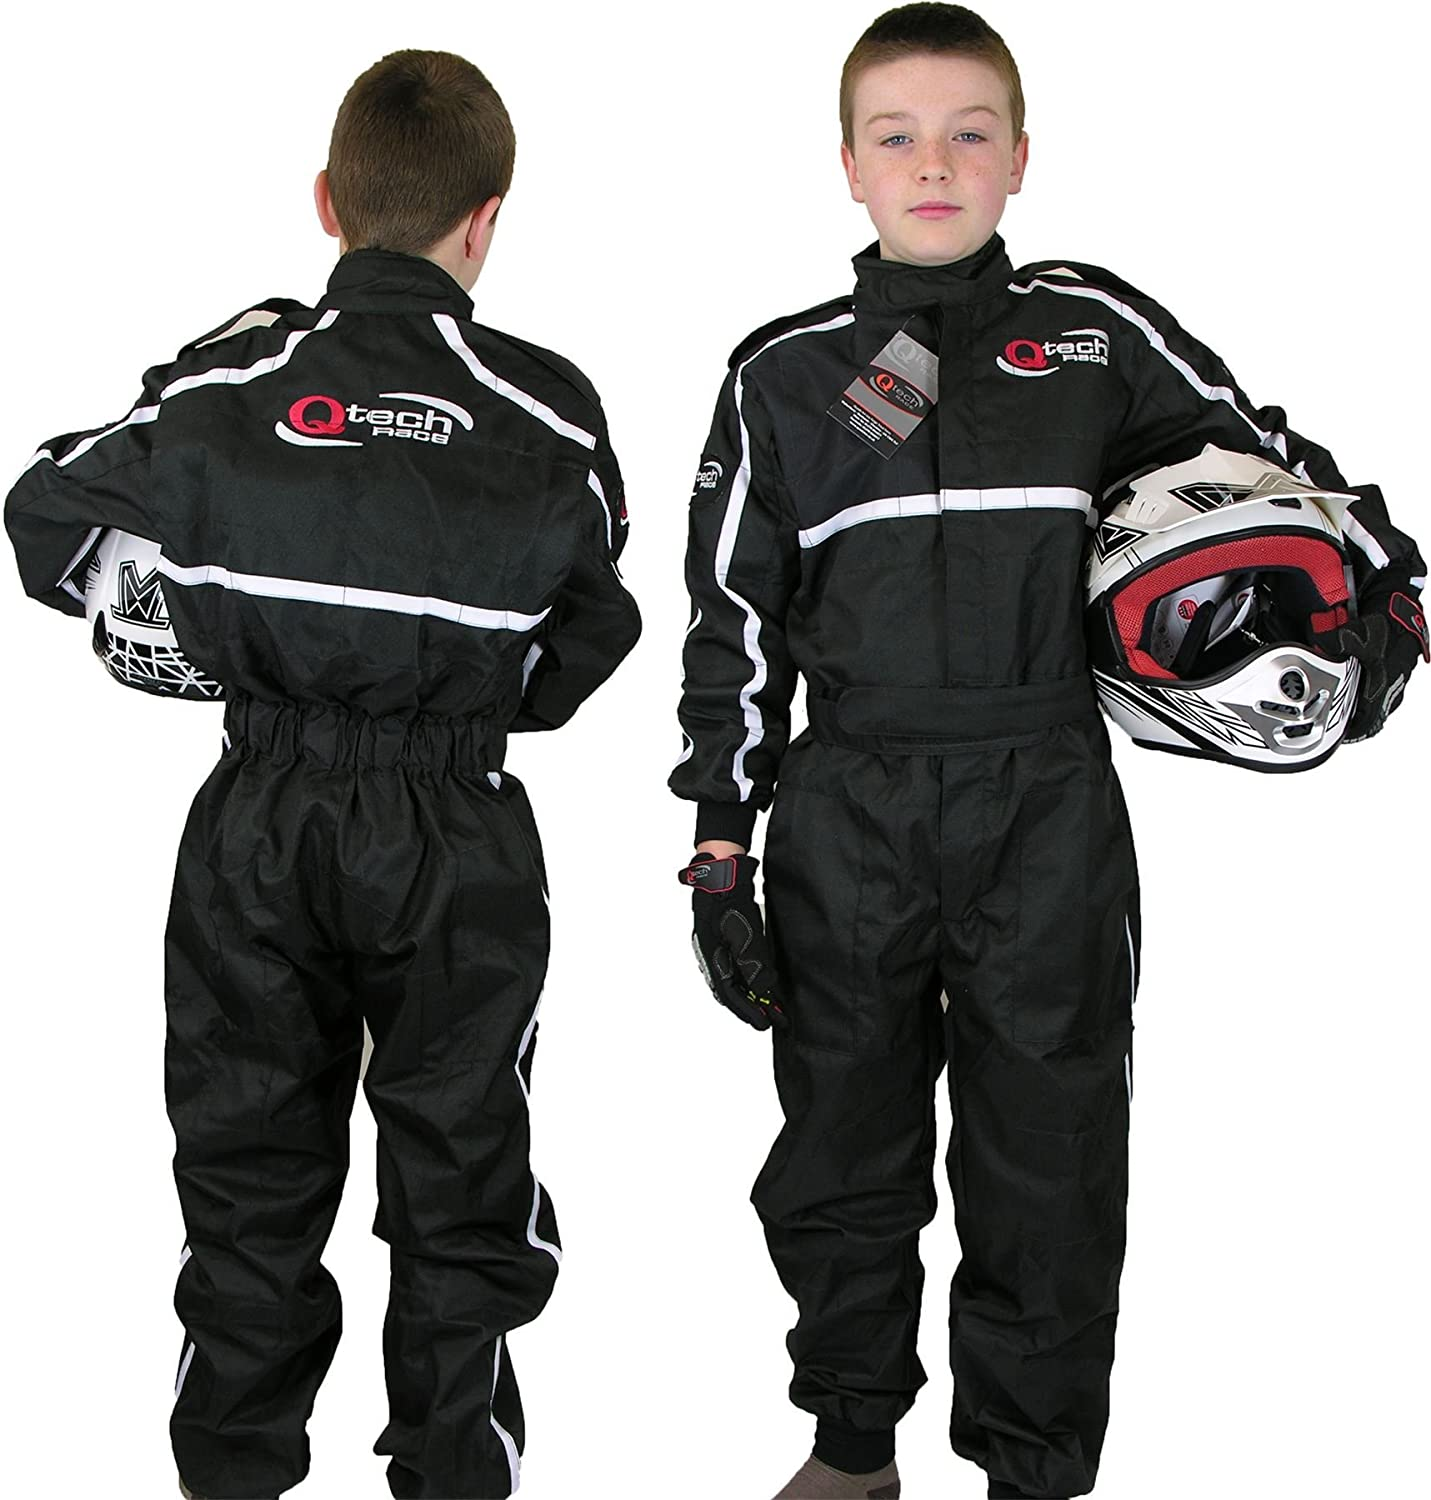 Blue Medium Qtech Childrens Racing Suit Limited Edition for kids Motocross ATV Karting and General Usage with Ankle Cuffs